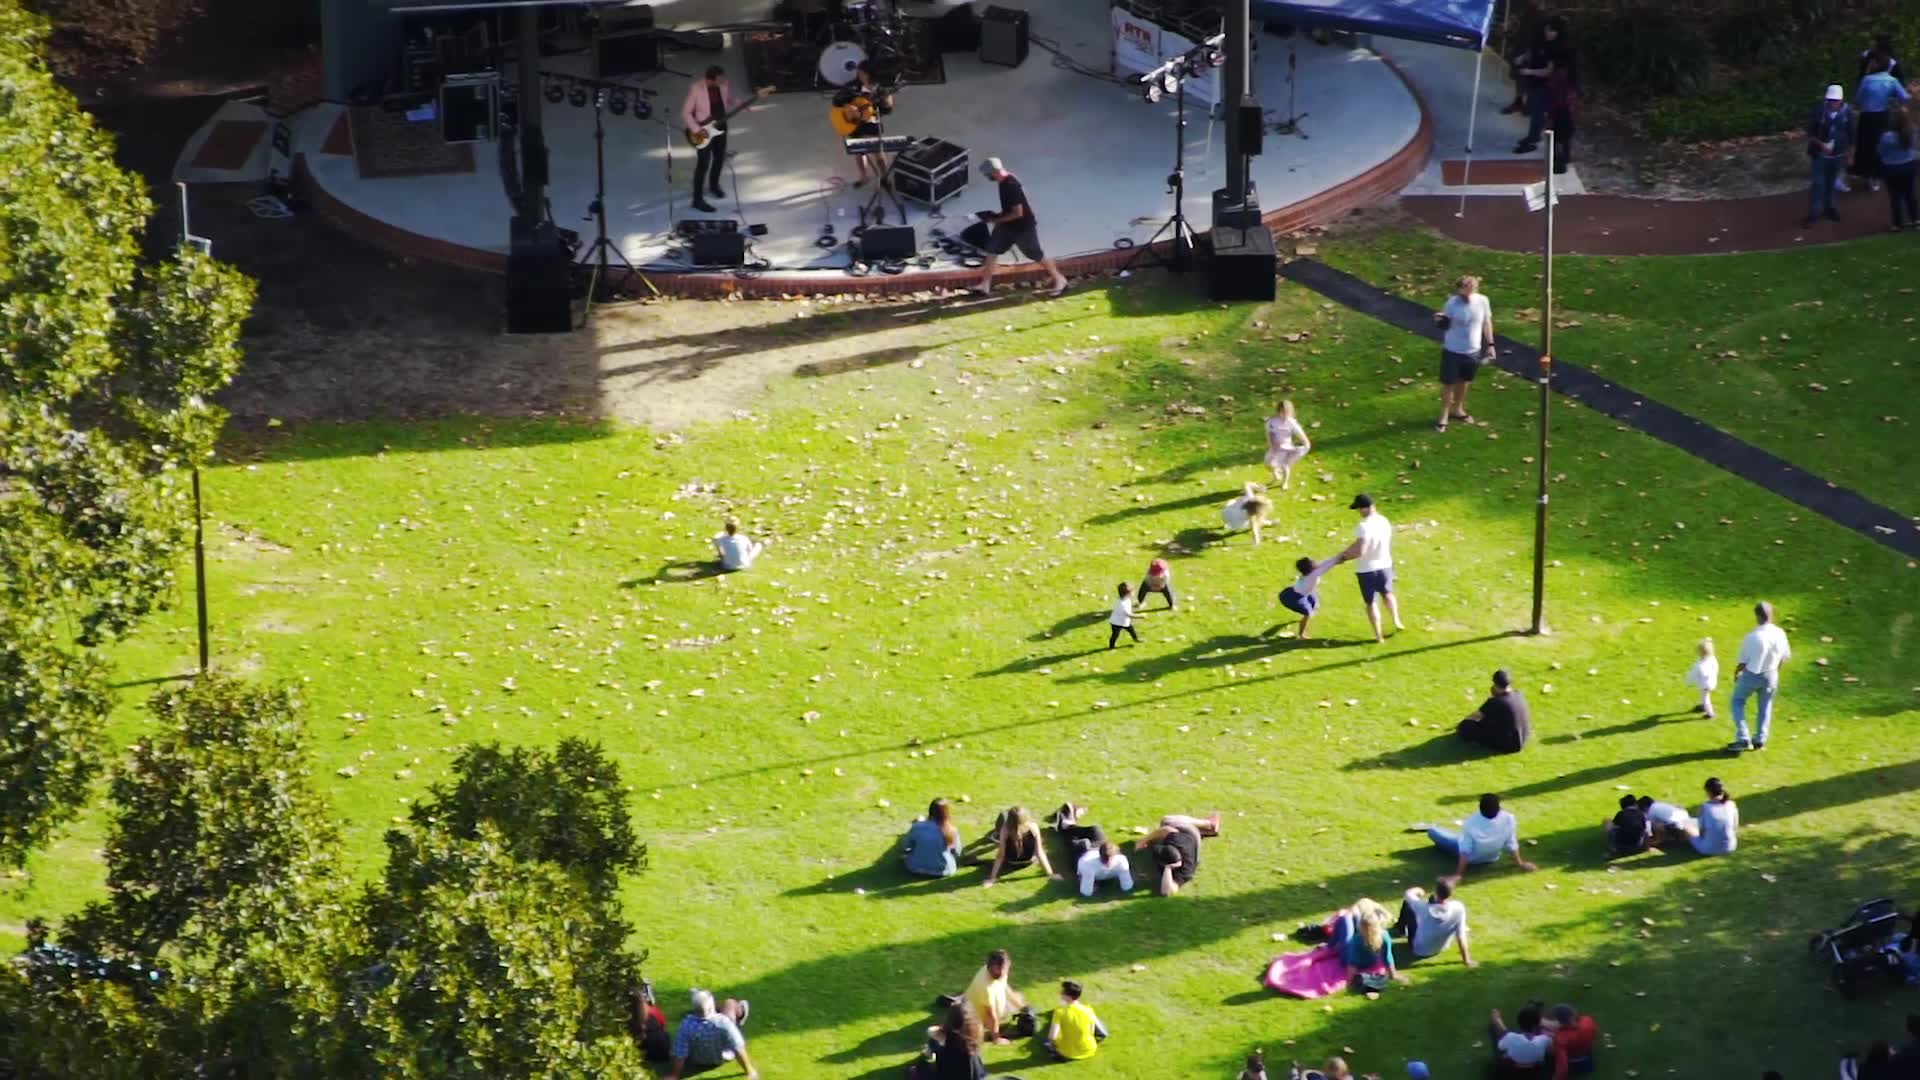 Check out some amazing footage of RTRFM's Neon Picnic 2018 last week.   Captured by the team at Spectre UAV Concepts. What a beautiful place we live and thanks for spending your Saturday with us last week.   Make sure to grab your tickets to 20 Years